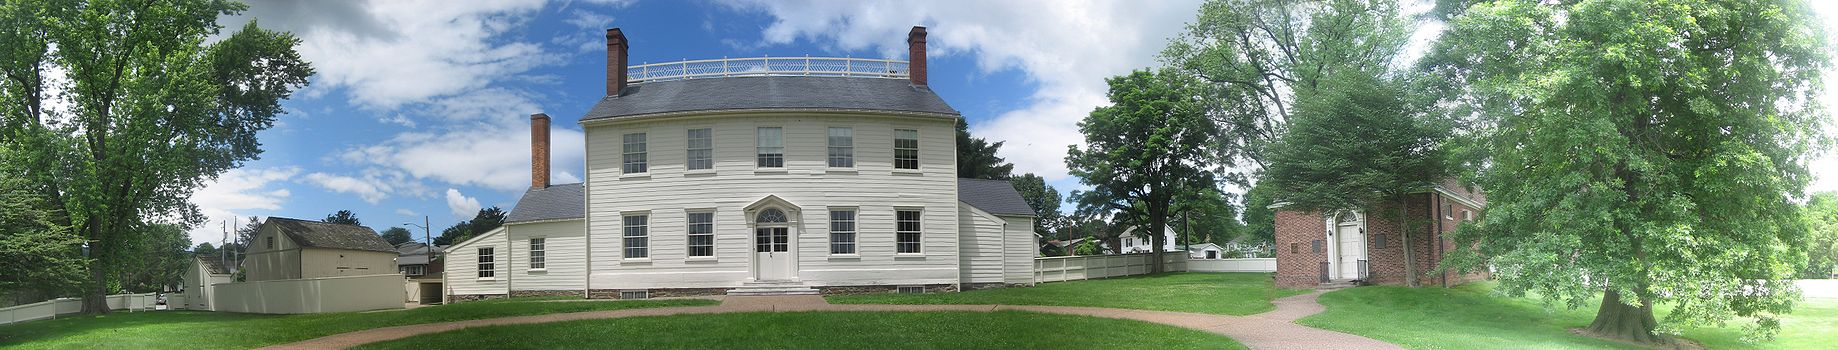 A two-story white house with one-storey wings on each side, many windows, a central door, three chimneys, and a balustrade. A white latrine and barn are on the left, and a small red brick building with a white door is on the right. A white wooden fence encloses the whole yard, which has several large trees. The sky is blue with white clouds.